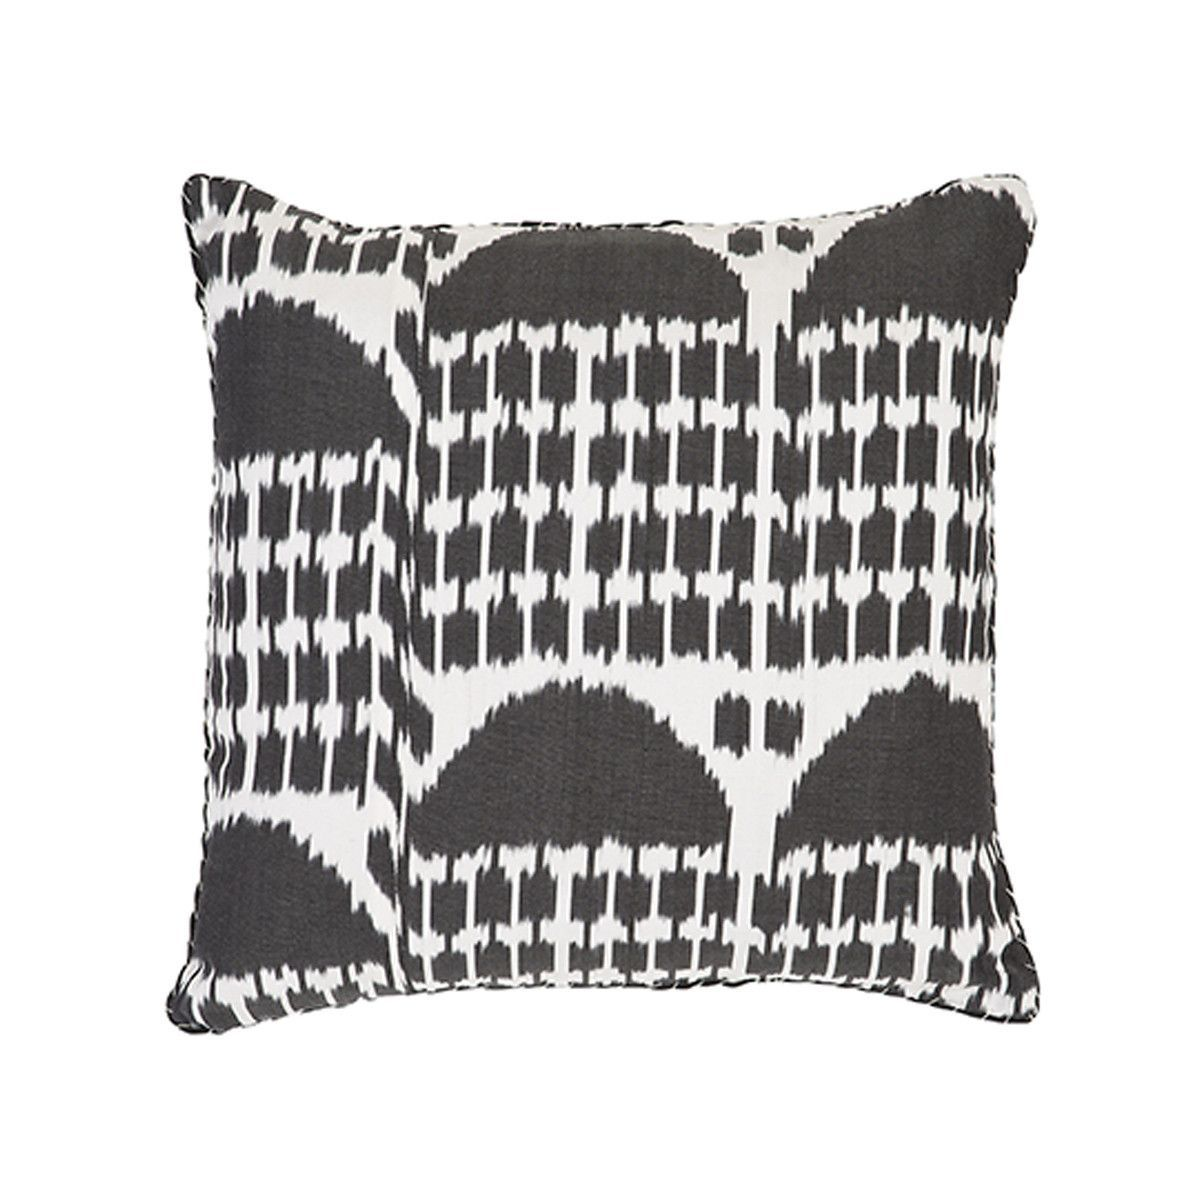 Black Gobi Ikat Pillow Madeline Weinrib Pillows Ikat Pillows